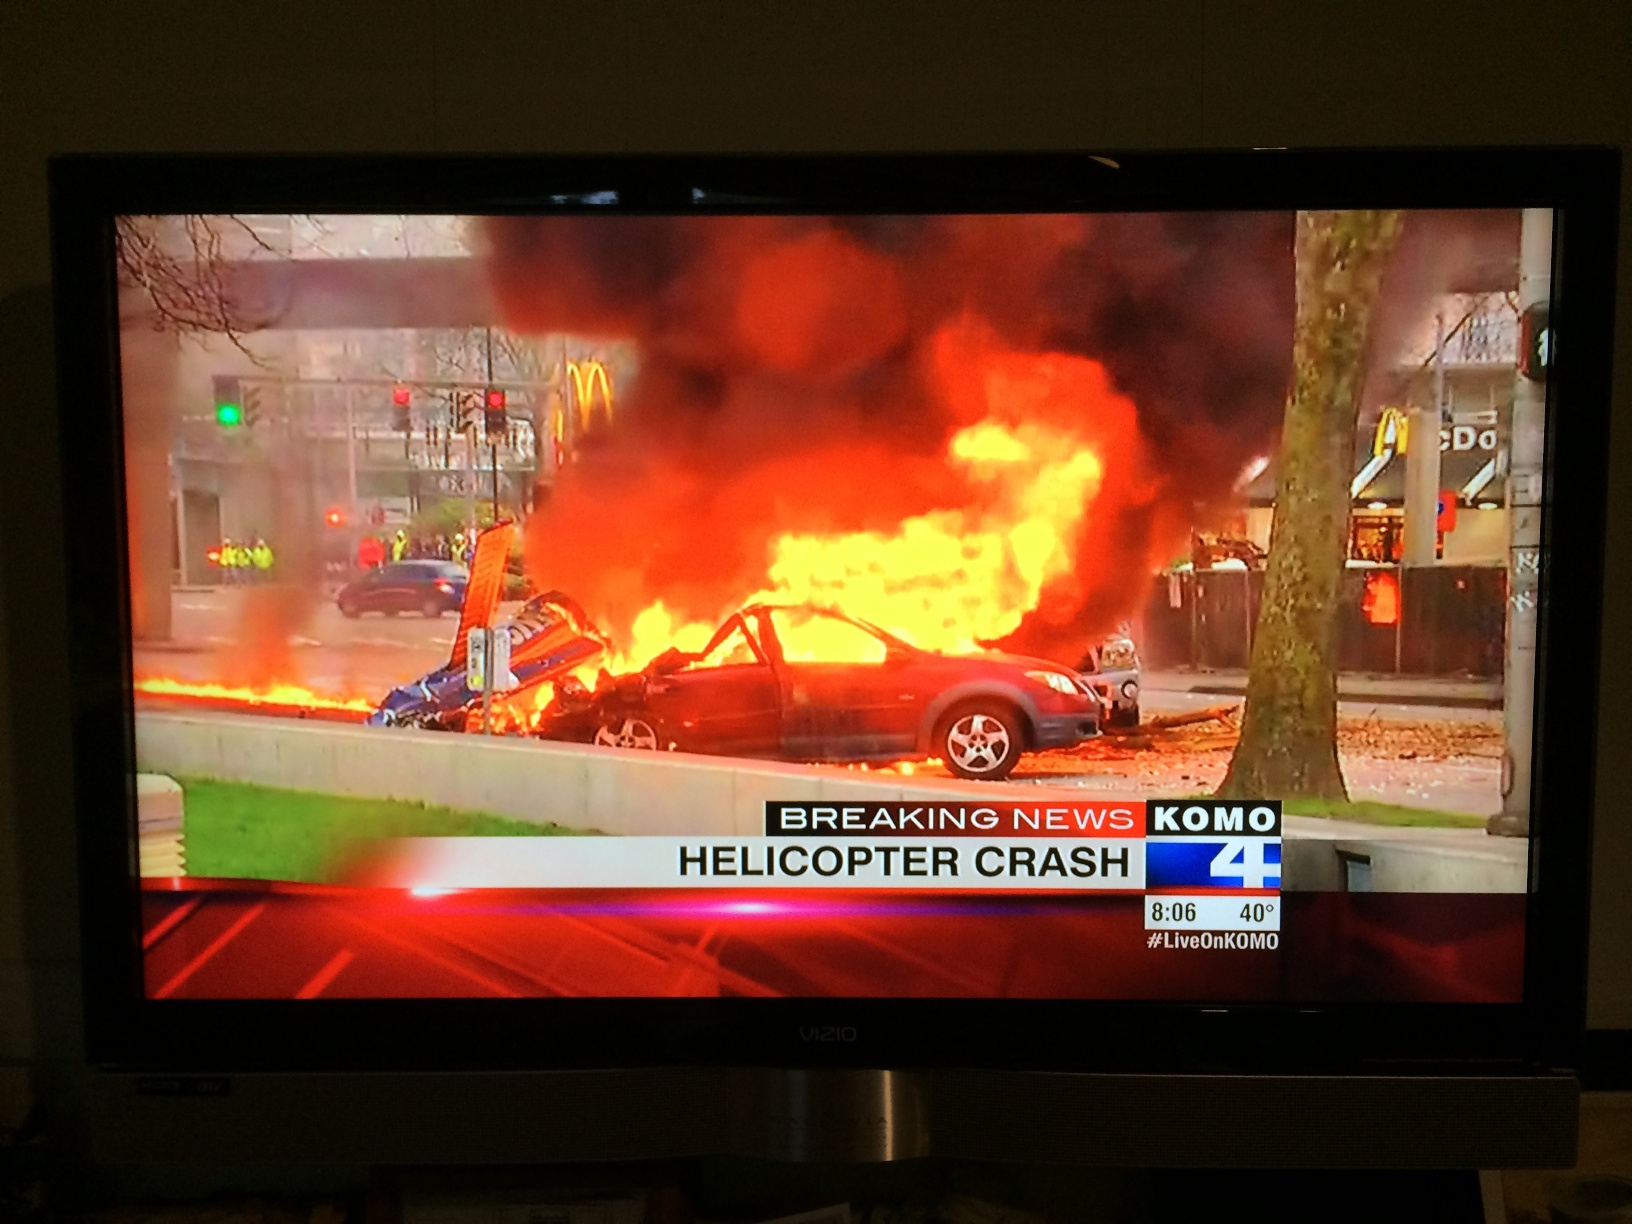 Helicopter Crash at Fisher Plaza - Welcome to Ucikura's Blog - Bloguru